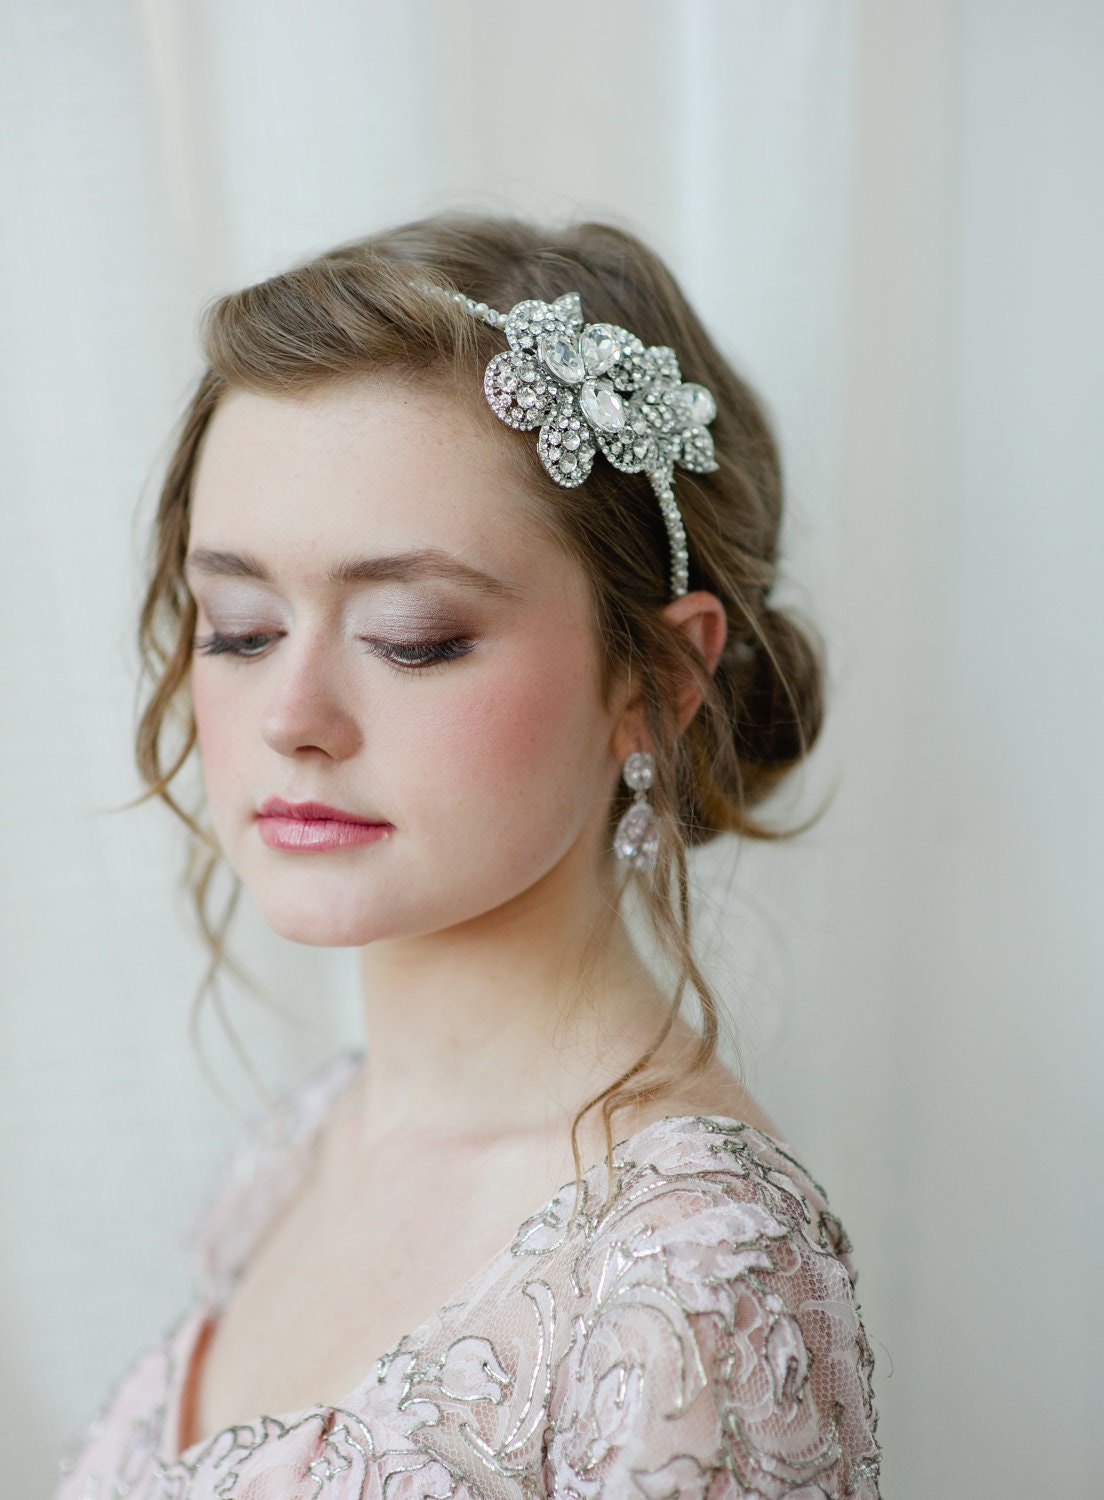 Bridal Headband with Rhinestone Flower and Swarovski Pearls and Crystals by Fine & Fleurie